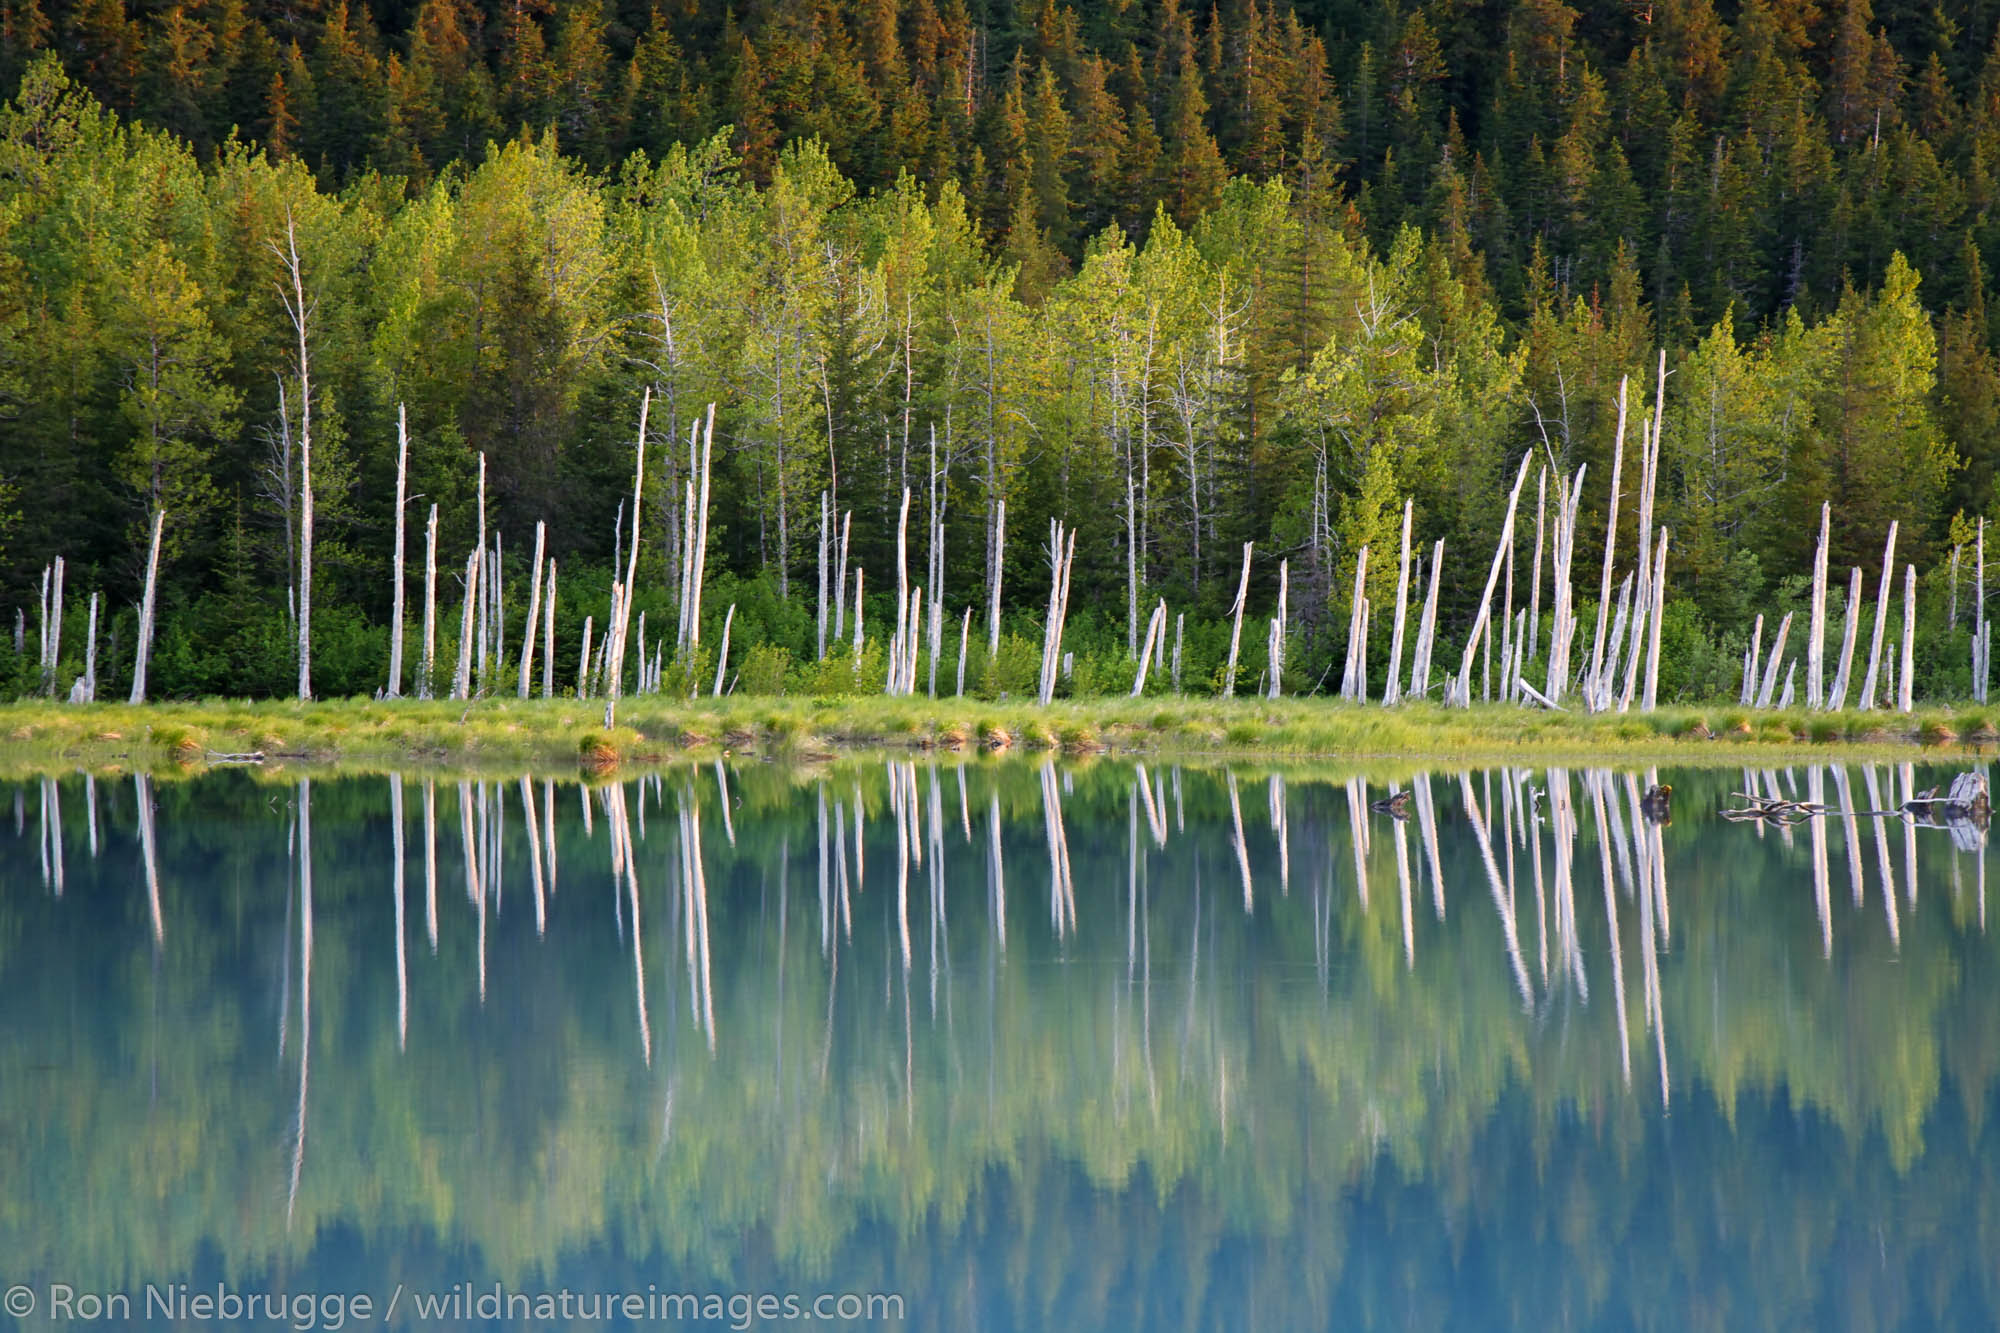 Standing dead trees known as a ghost forest, Portage Valley, Chugach National Forest, Alaska.